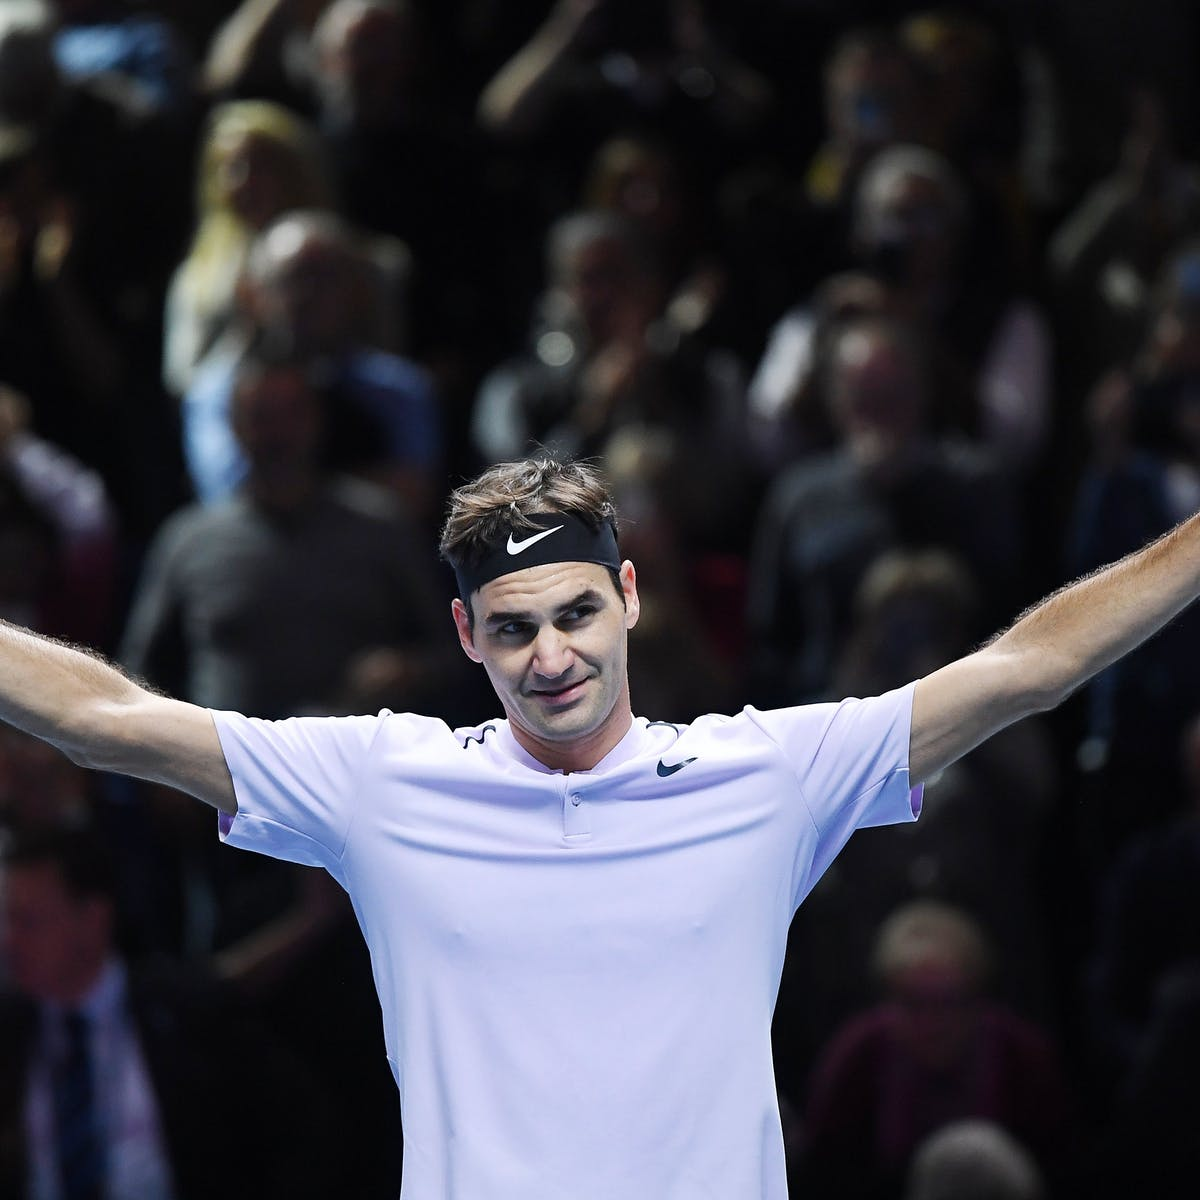 Why so many tennis players go pro even though few 'make it'